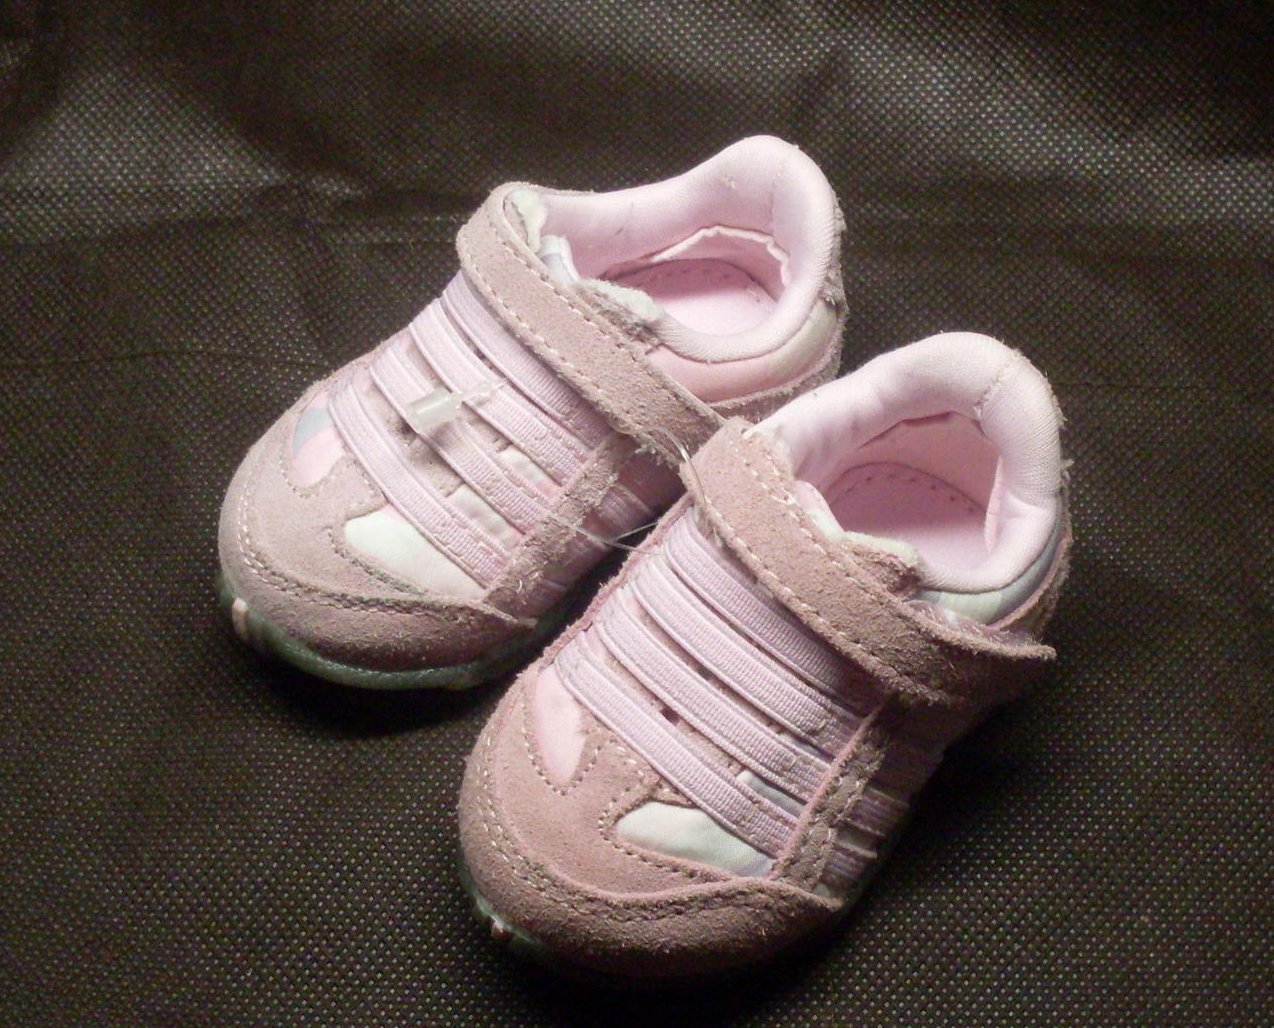 Infant Toddler Baby Girl Sneakers Pink Size 1 Shoes Teeny Toes